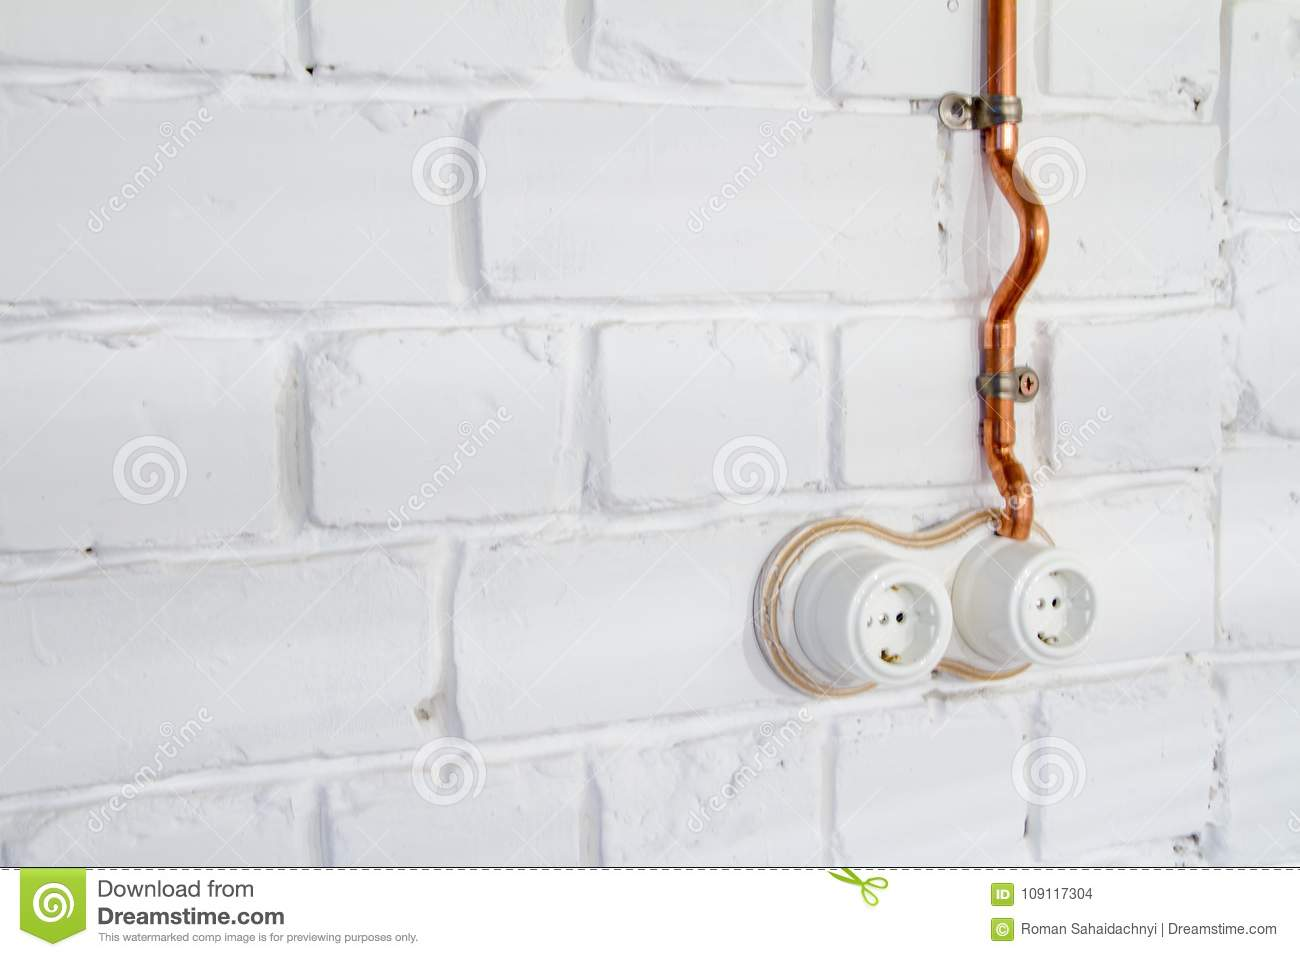 hight resolution of a vintage outlet and electrical wiring in a copper tube